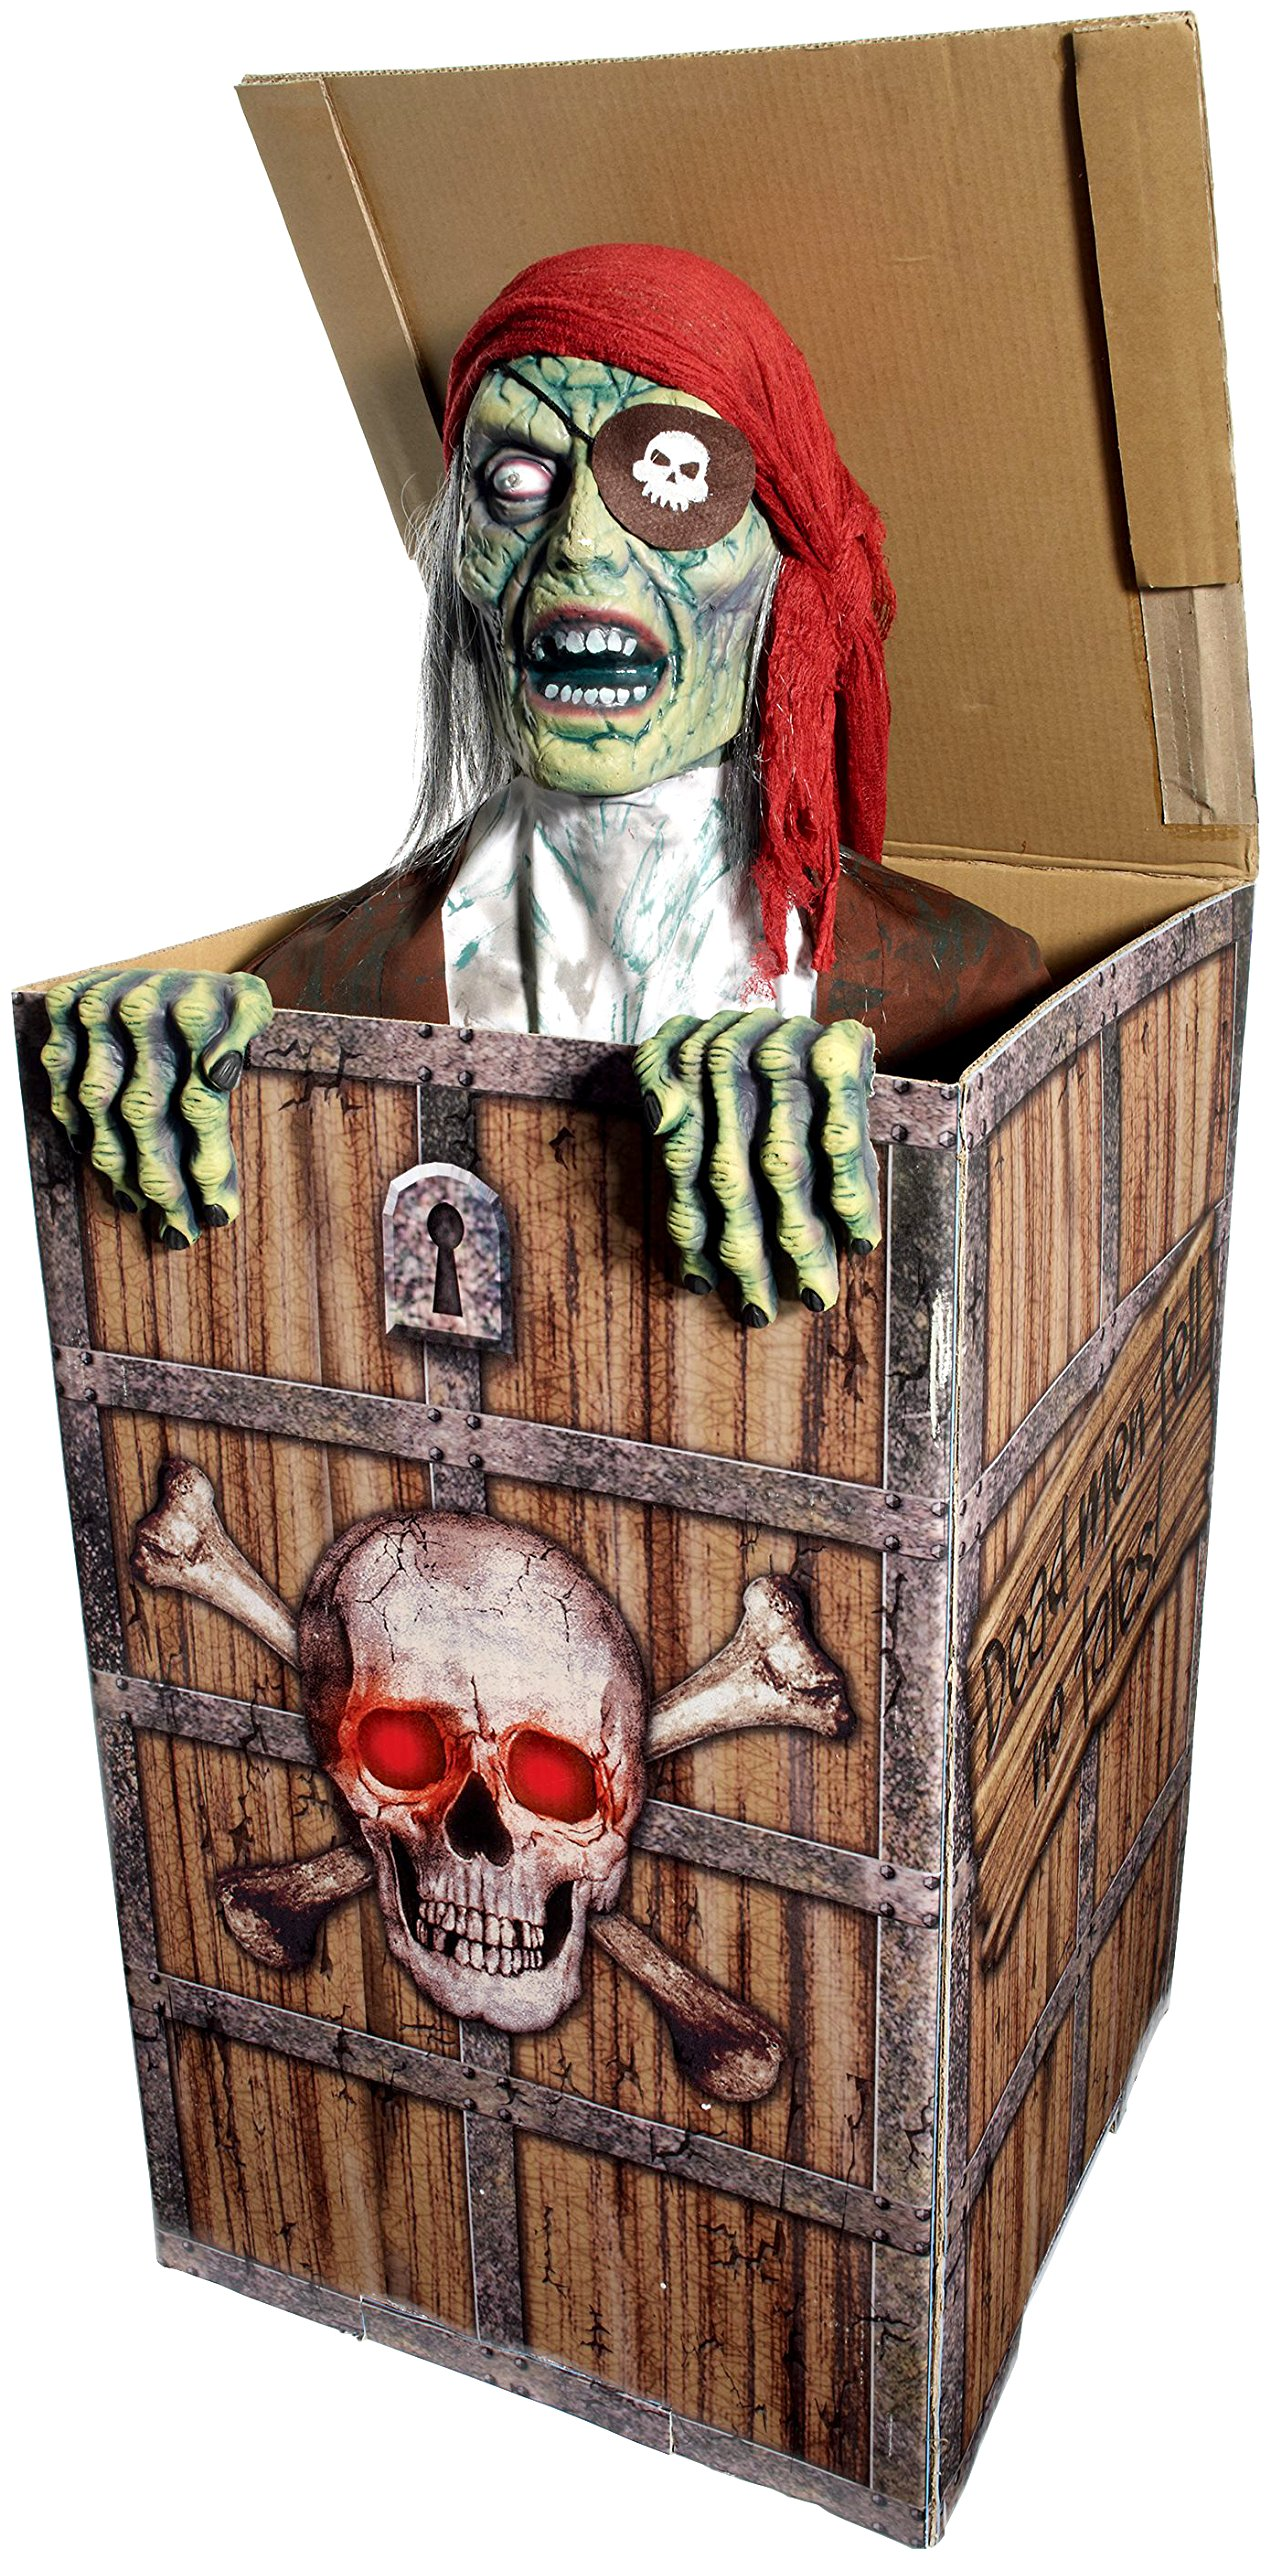 Forum Novelties Animatronic Prop Animated Pirate in a Chest for Party Decoration, Multicolor by Forum Novelties